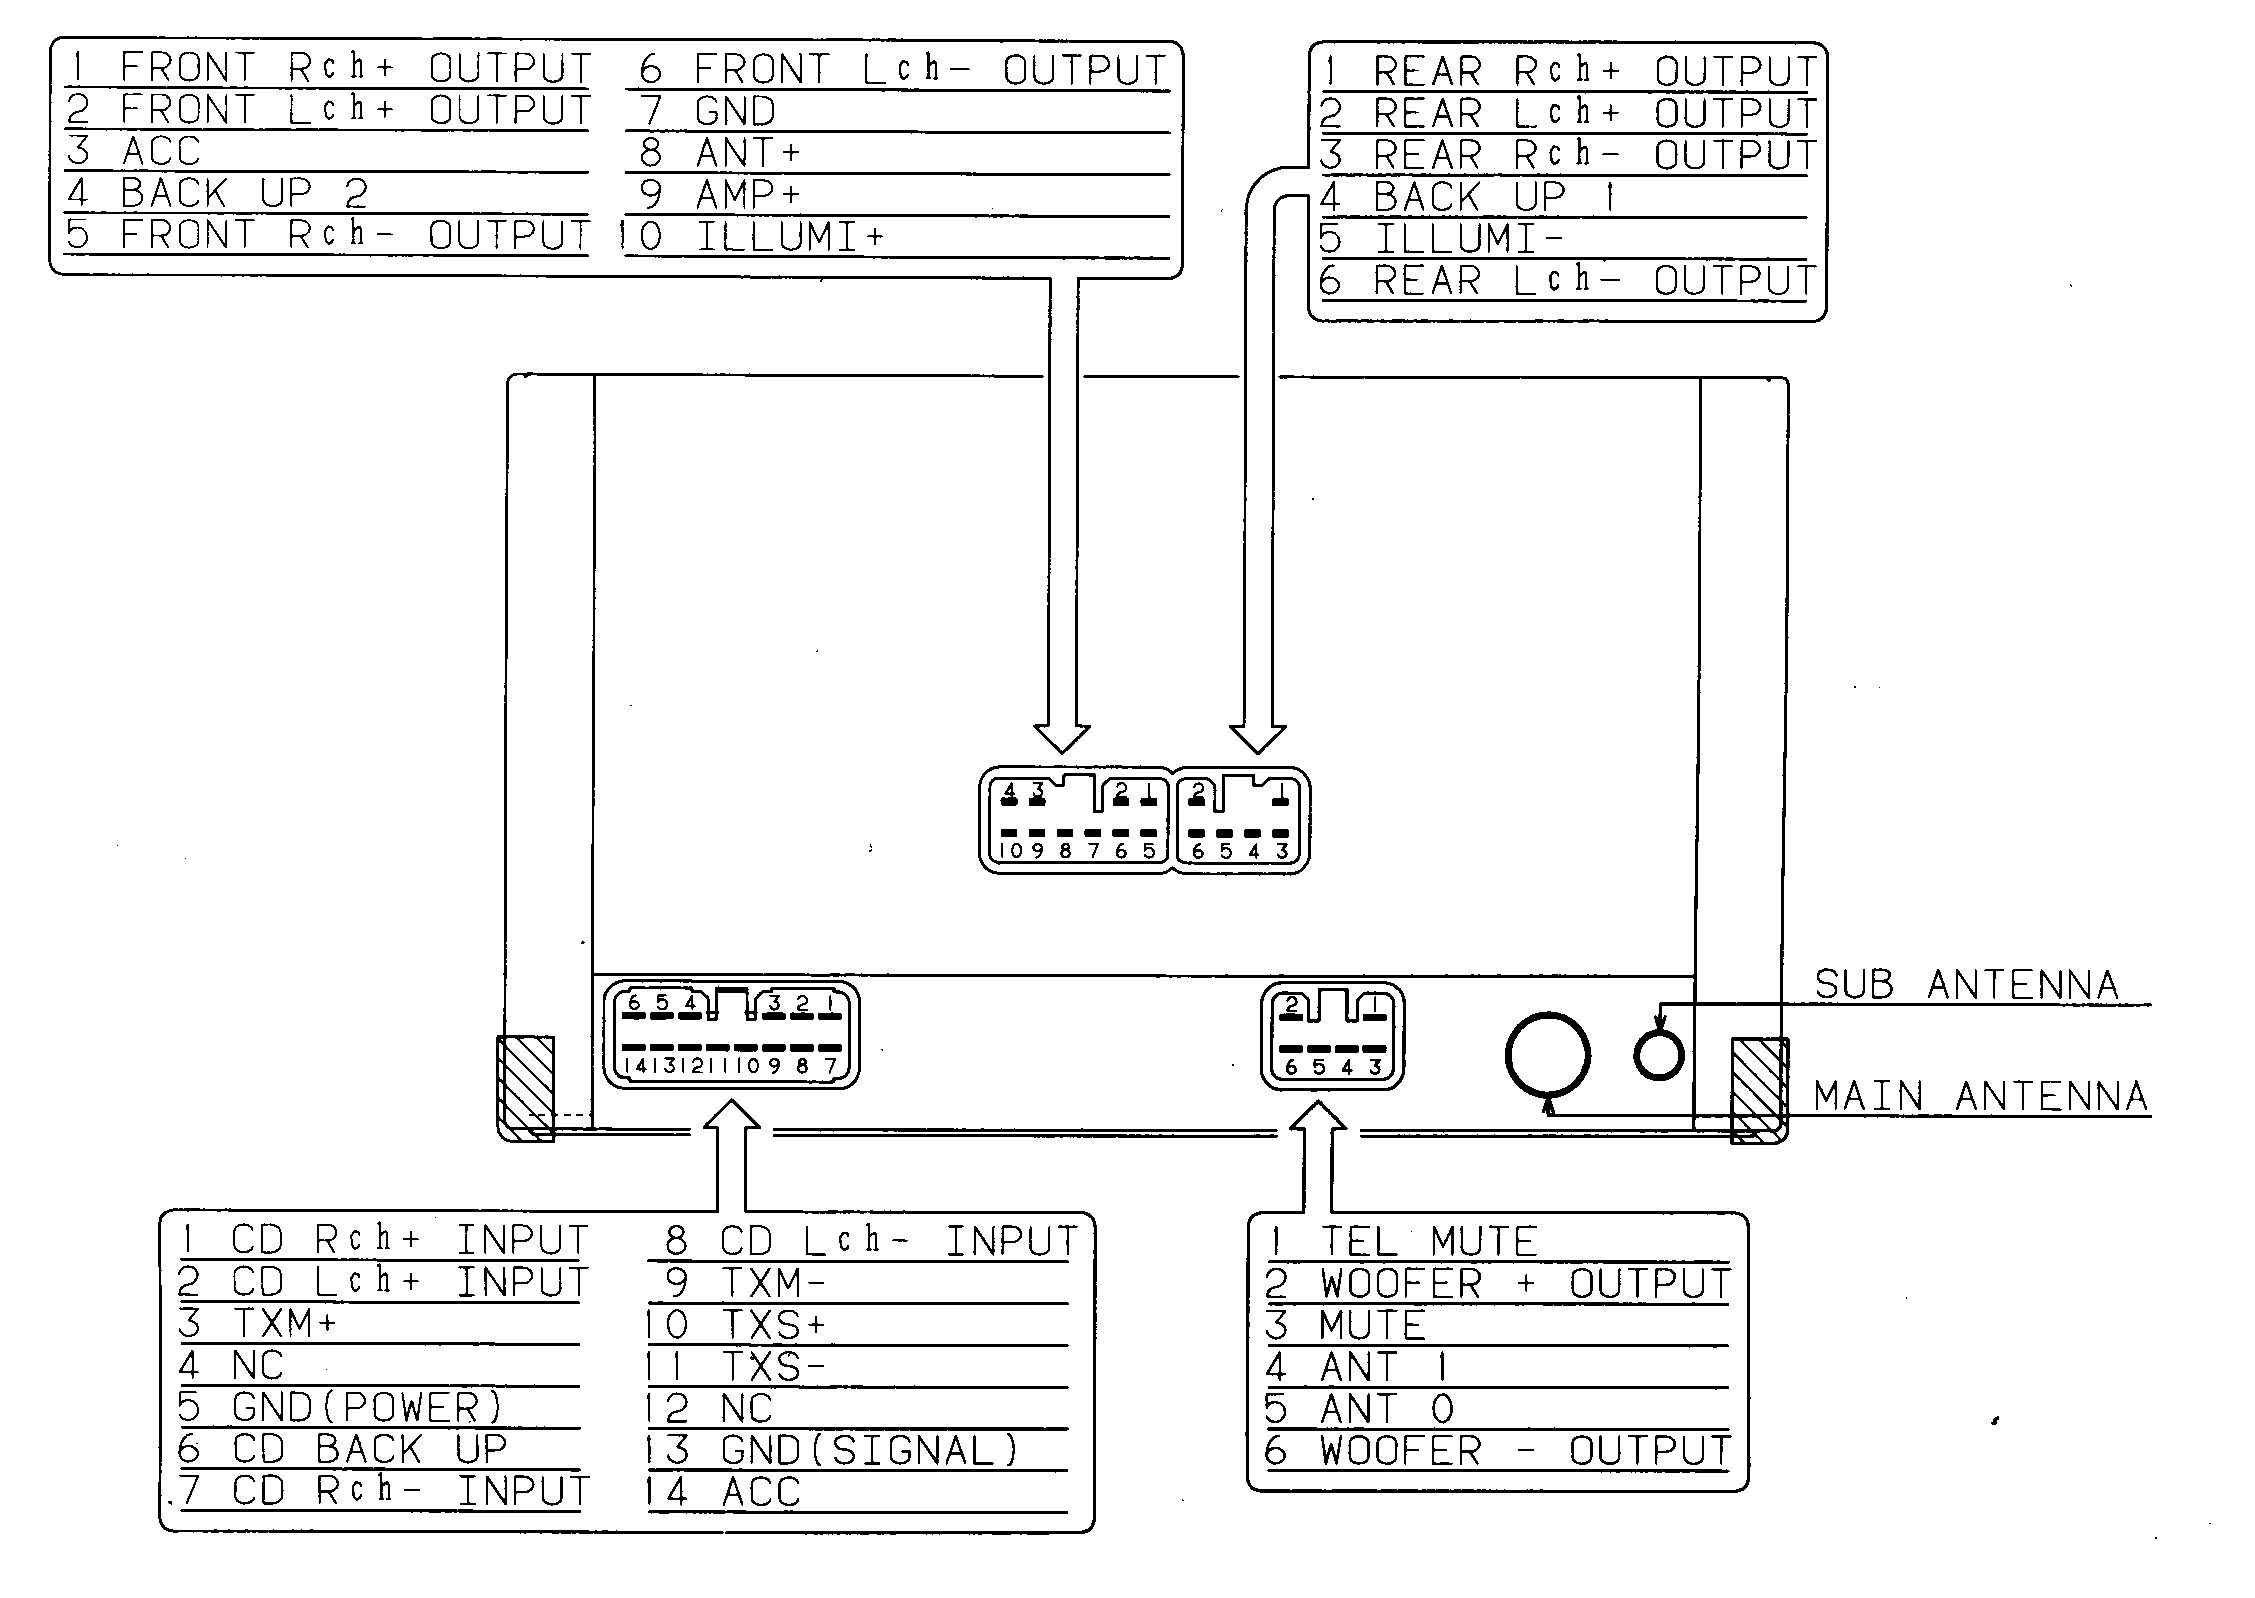 Lexus car stereo wiring diagram harness pinout connector wire hino wiring diagram hino wiring diagrams color \u2022 wiring diagrams 1994 lexus ls400 radio wiring diagram at webbmarketing.co